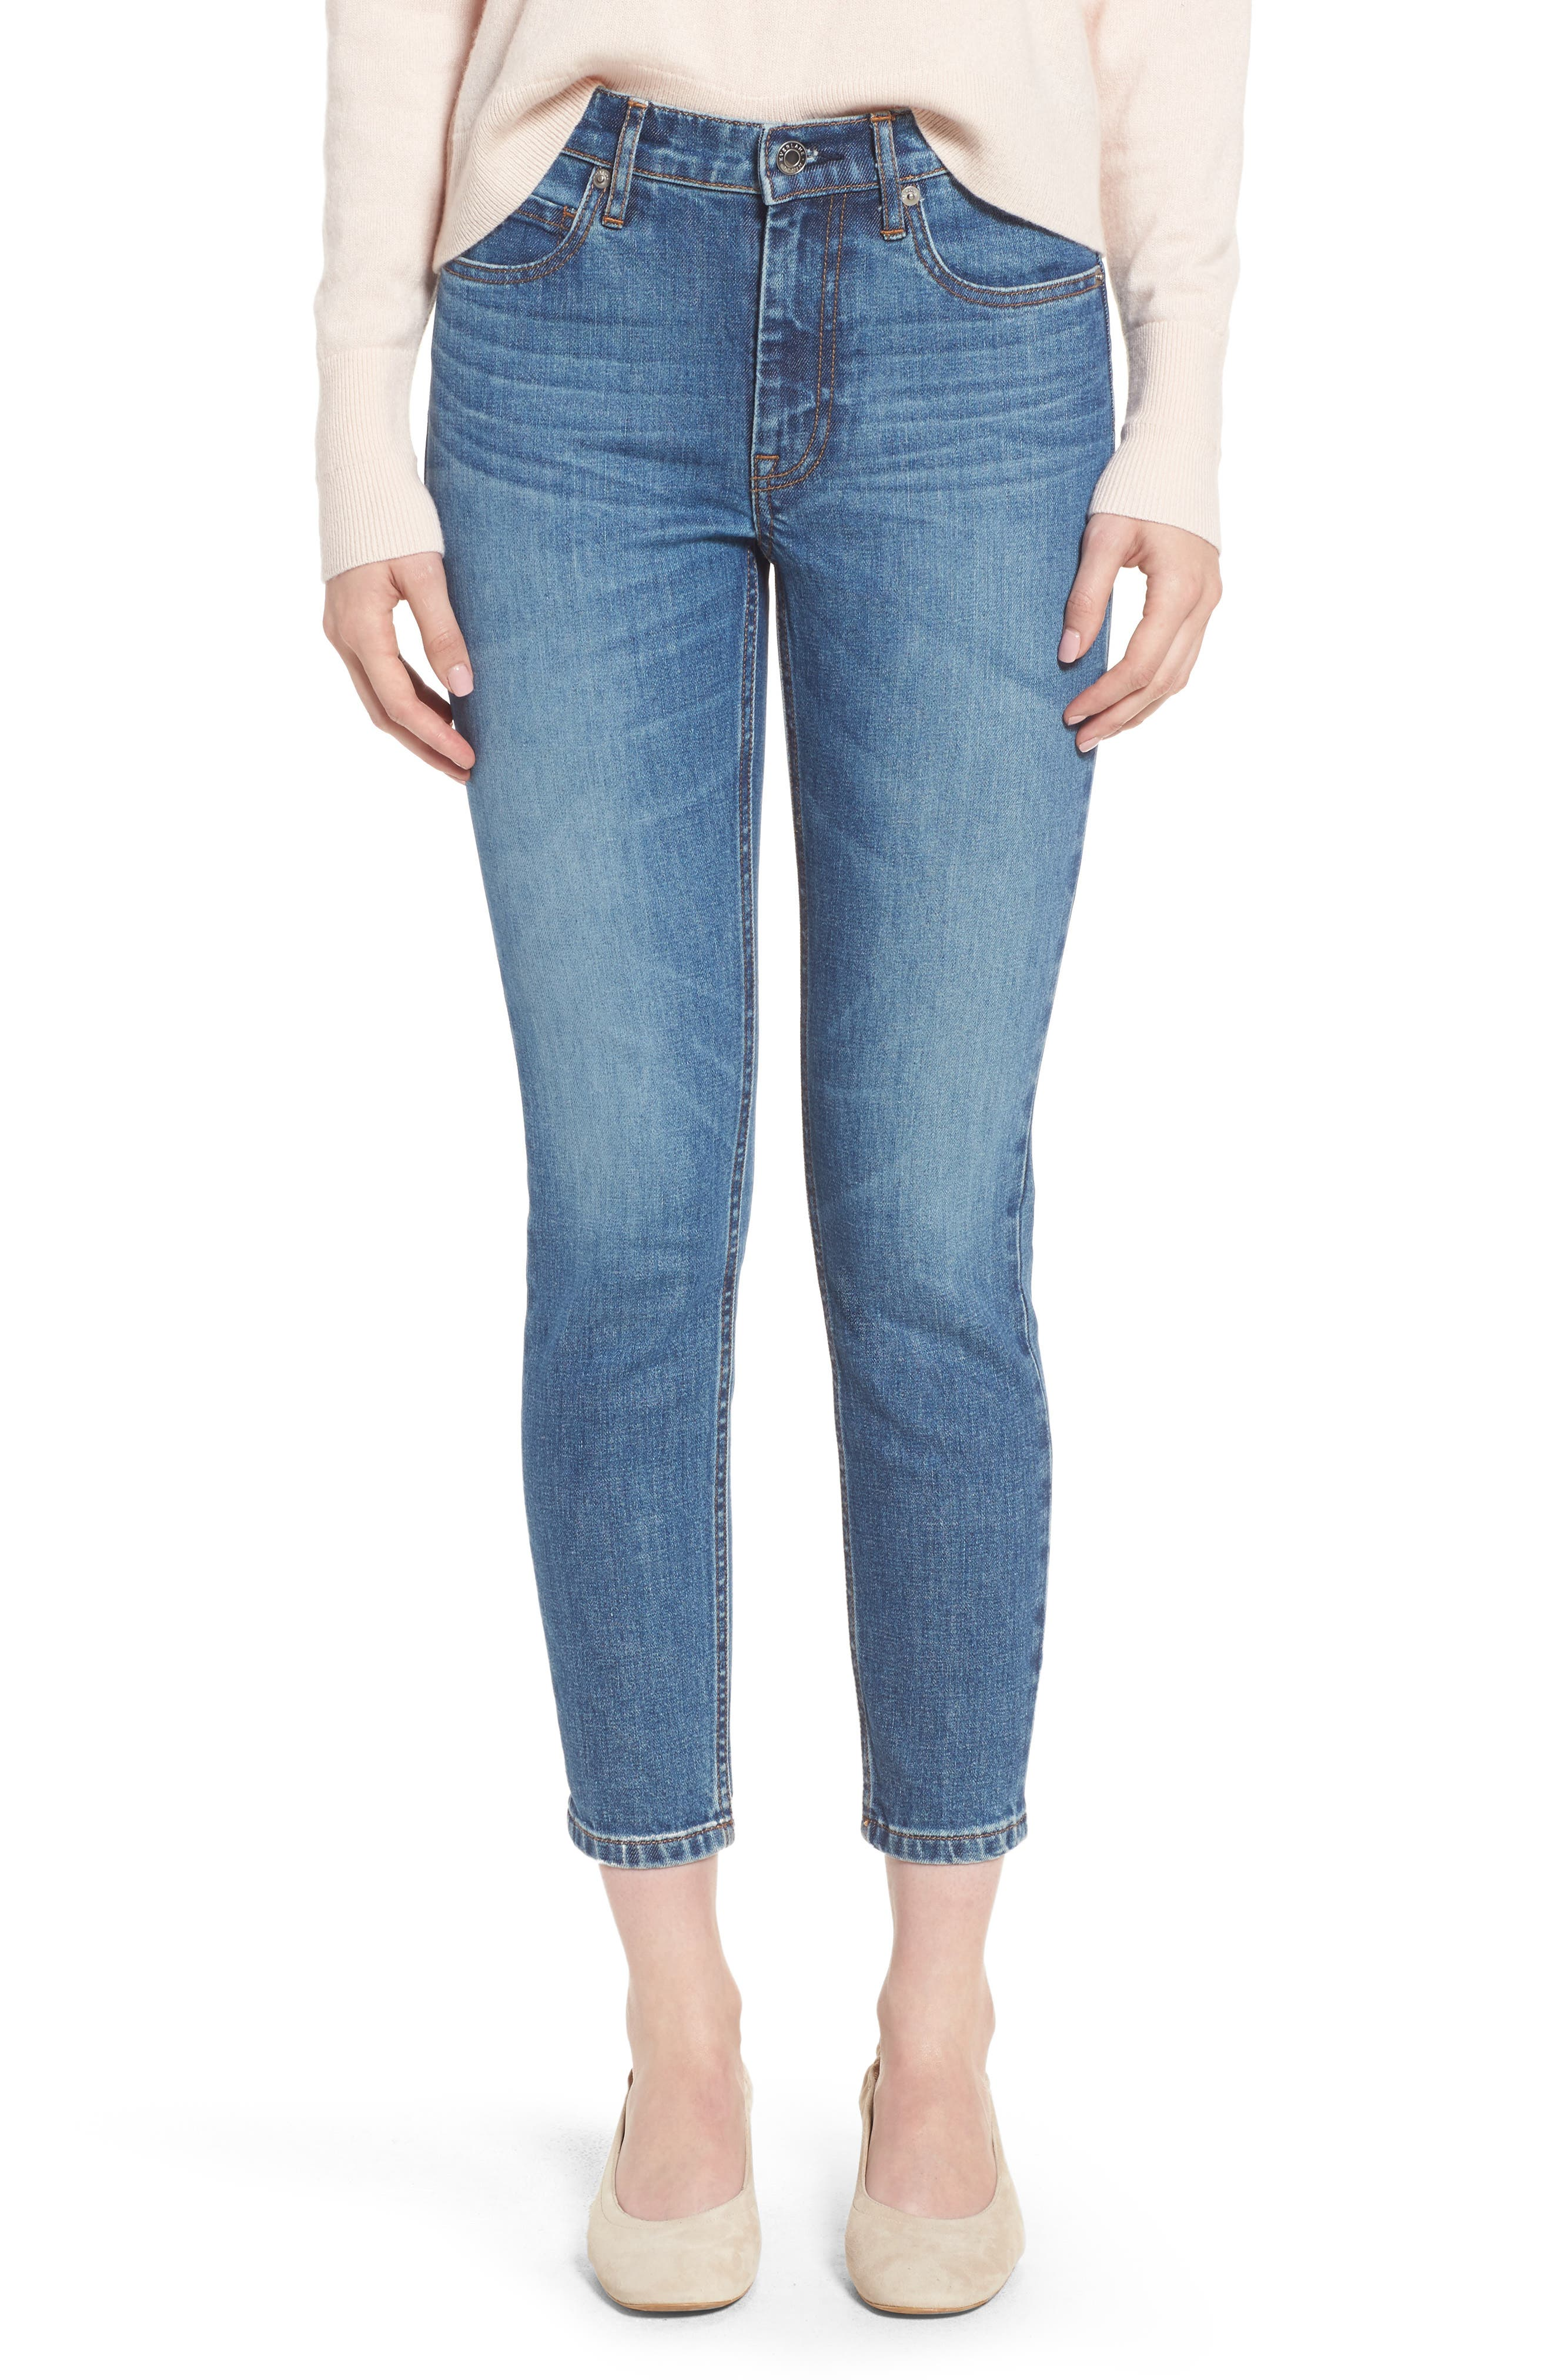 Alternate Image 1 Selected - Everlane The Mid Rise Skinny Ankle Jeans